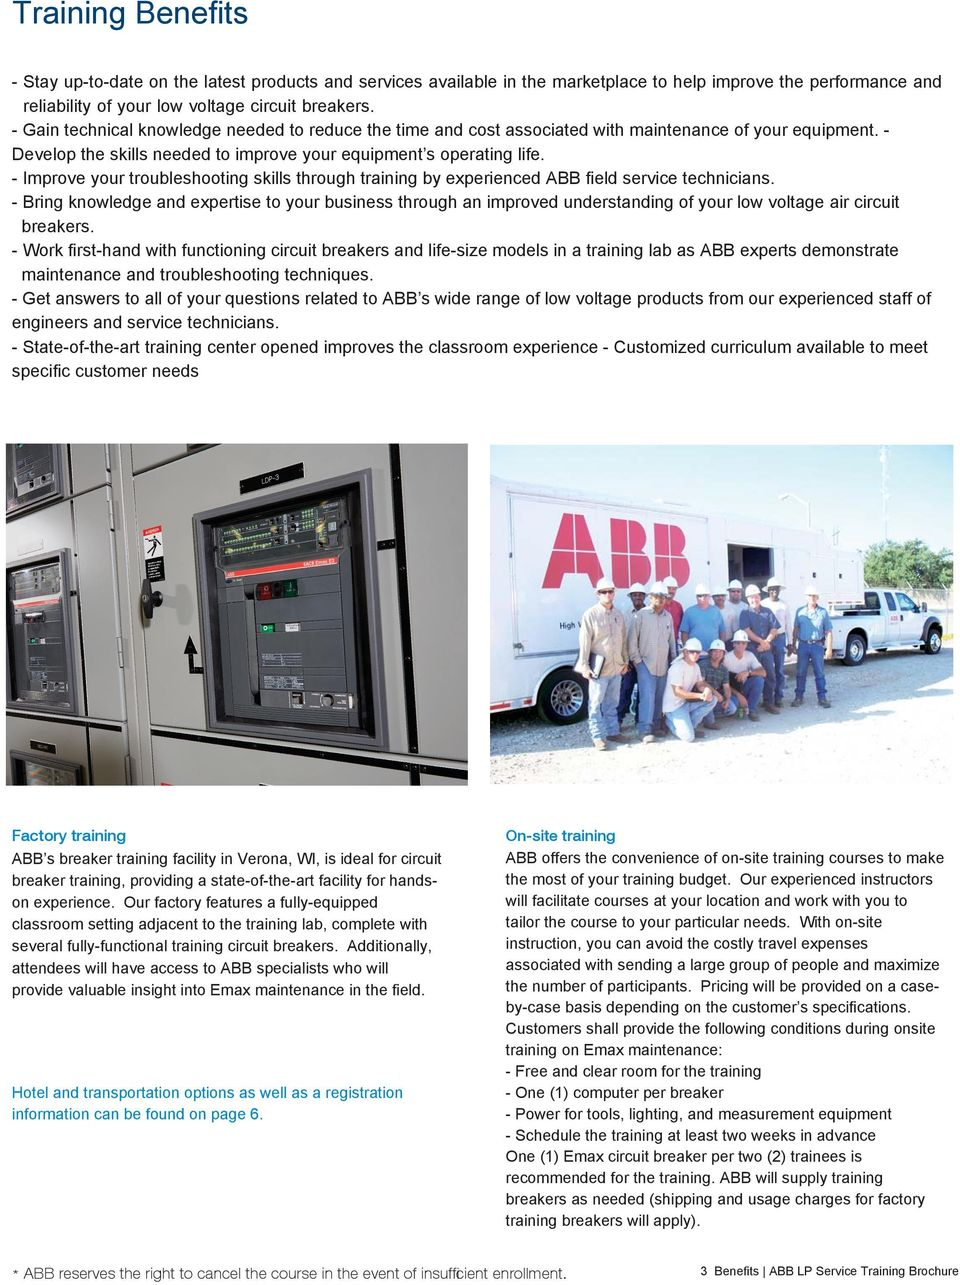 Abb Low Voltage Service Air Circuit Breaker Maintenance Training How To Troubleshoot Breakers Improve Your Troubleshooting Skills Through By Experienced Eld Technicians